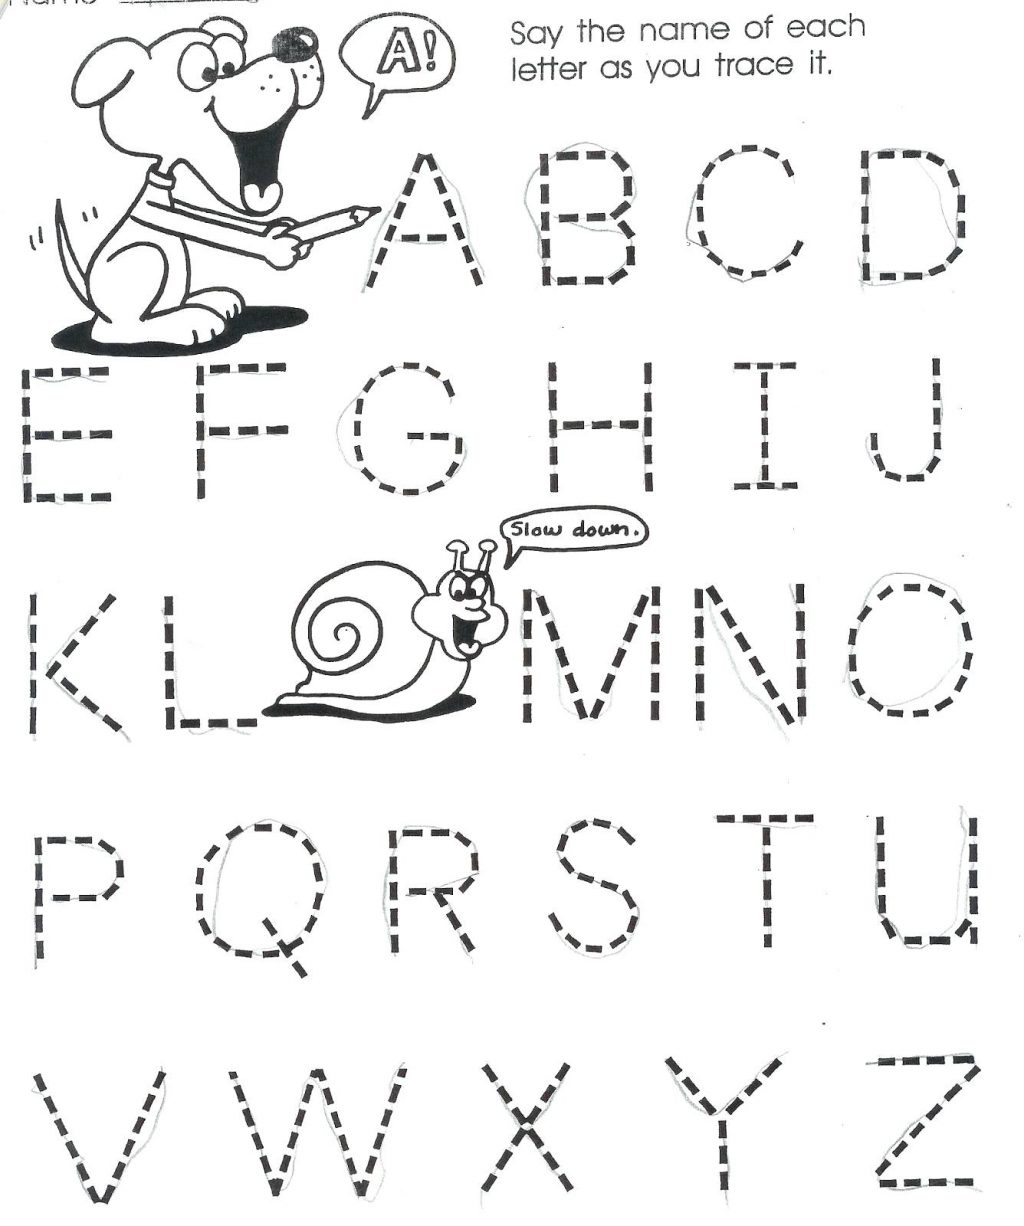 3 Year Old Tracing Worksheets | Printable Worksheets And inside Alphabet Worksheets For 2 Year Olds Pdf